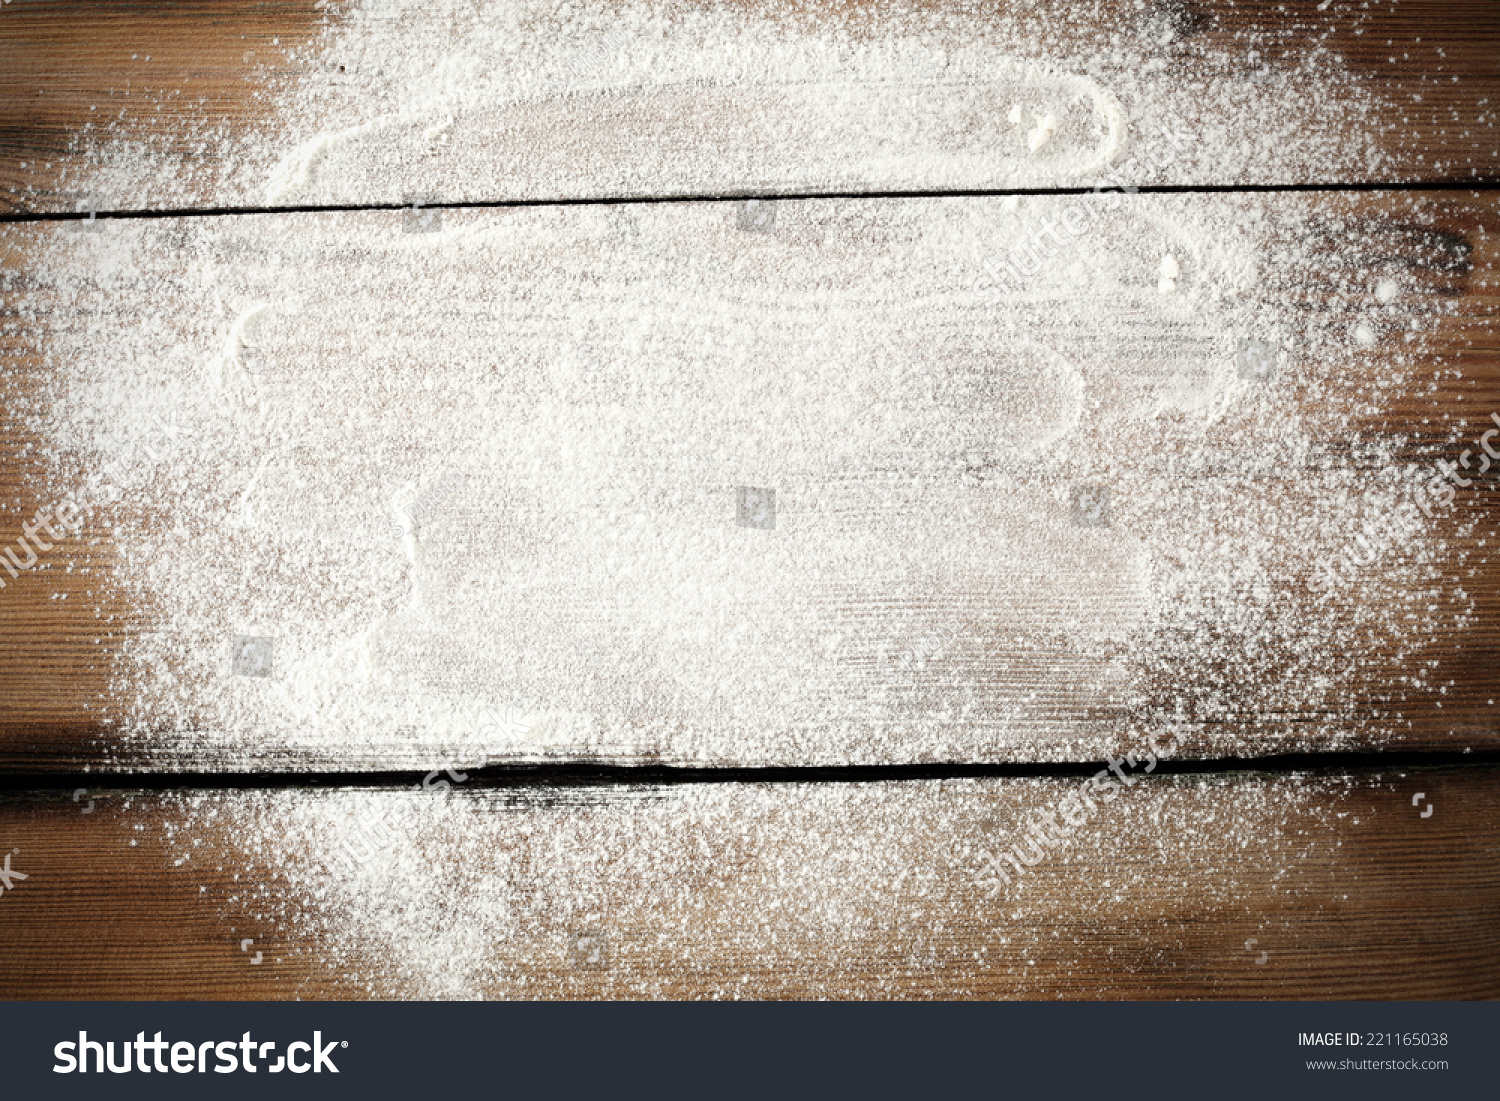 desk white flour stock photo (royalty free) 221165038 - shutterstock